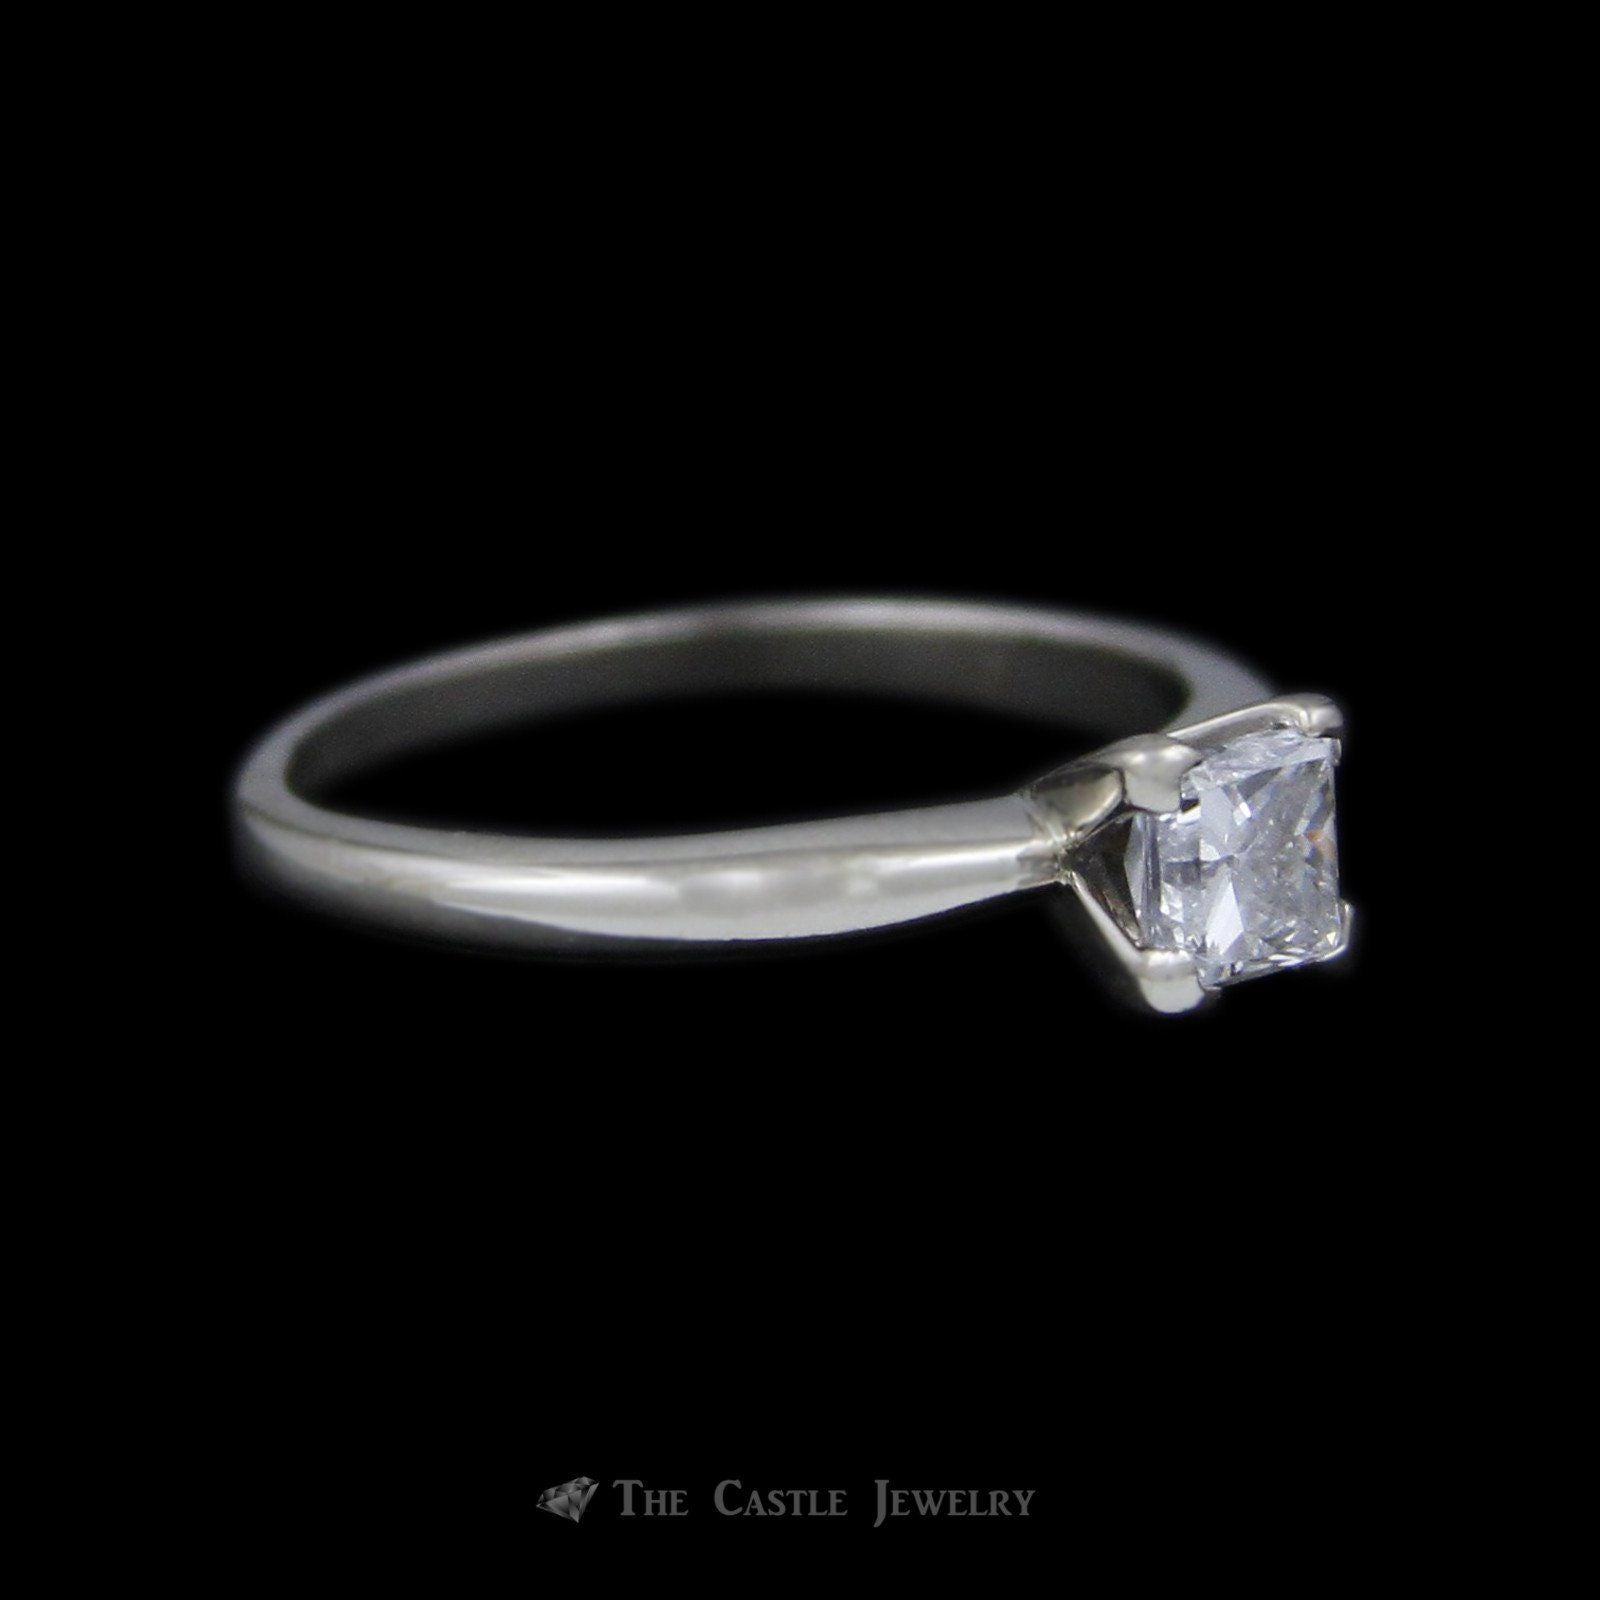 Princess Cut Diamond Solitaire .55 carat Engagement Ring in 14K White Gold